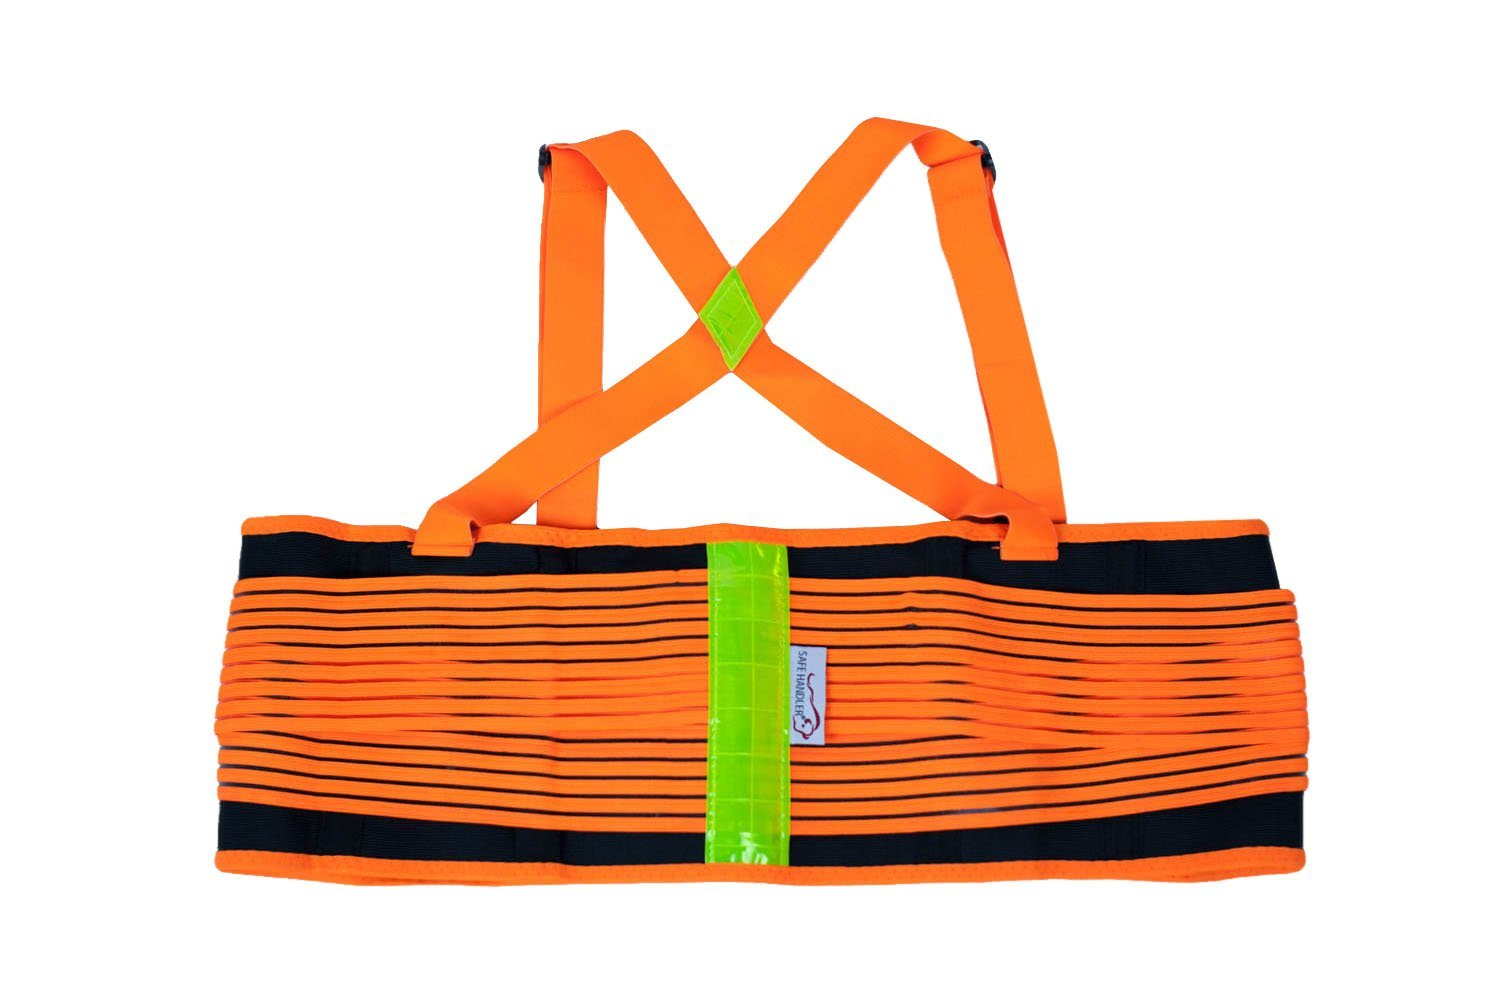 SAFE HANDLER Lifting Support Weight Belt - Orange & Black Reflective| Lower Back Brace Protects & Relieves Back Pain, Support Belt with Dual Adjustable Straps and Breathable Mesh Panels, XXXX-LARGE by Safe Handler